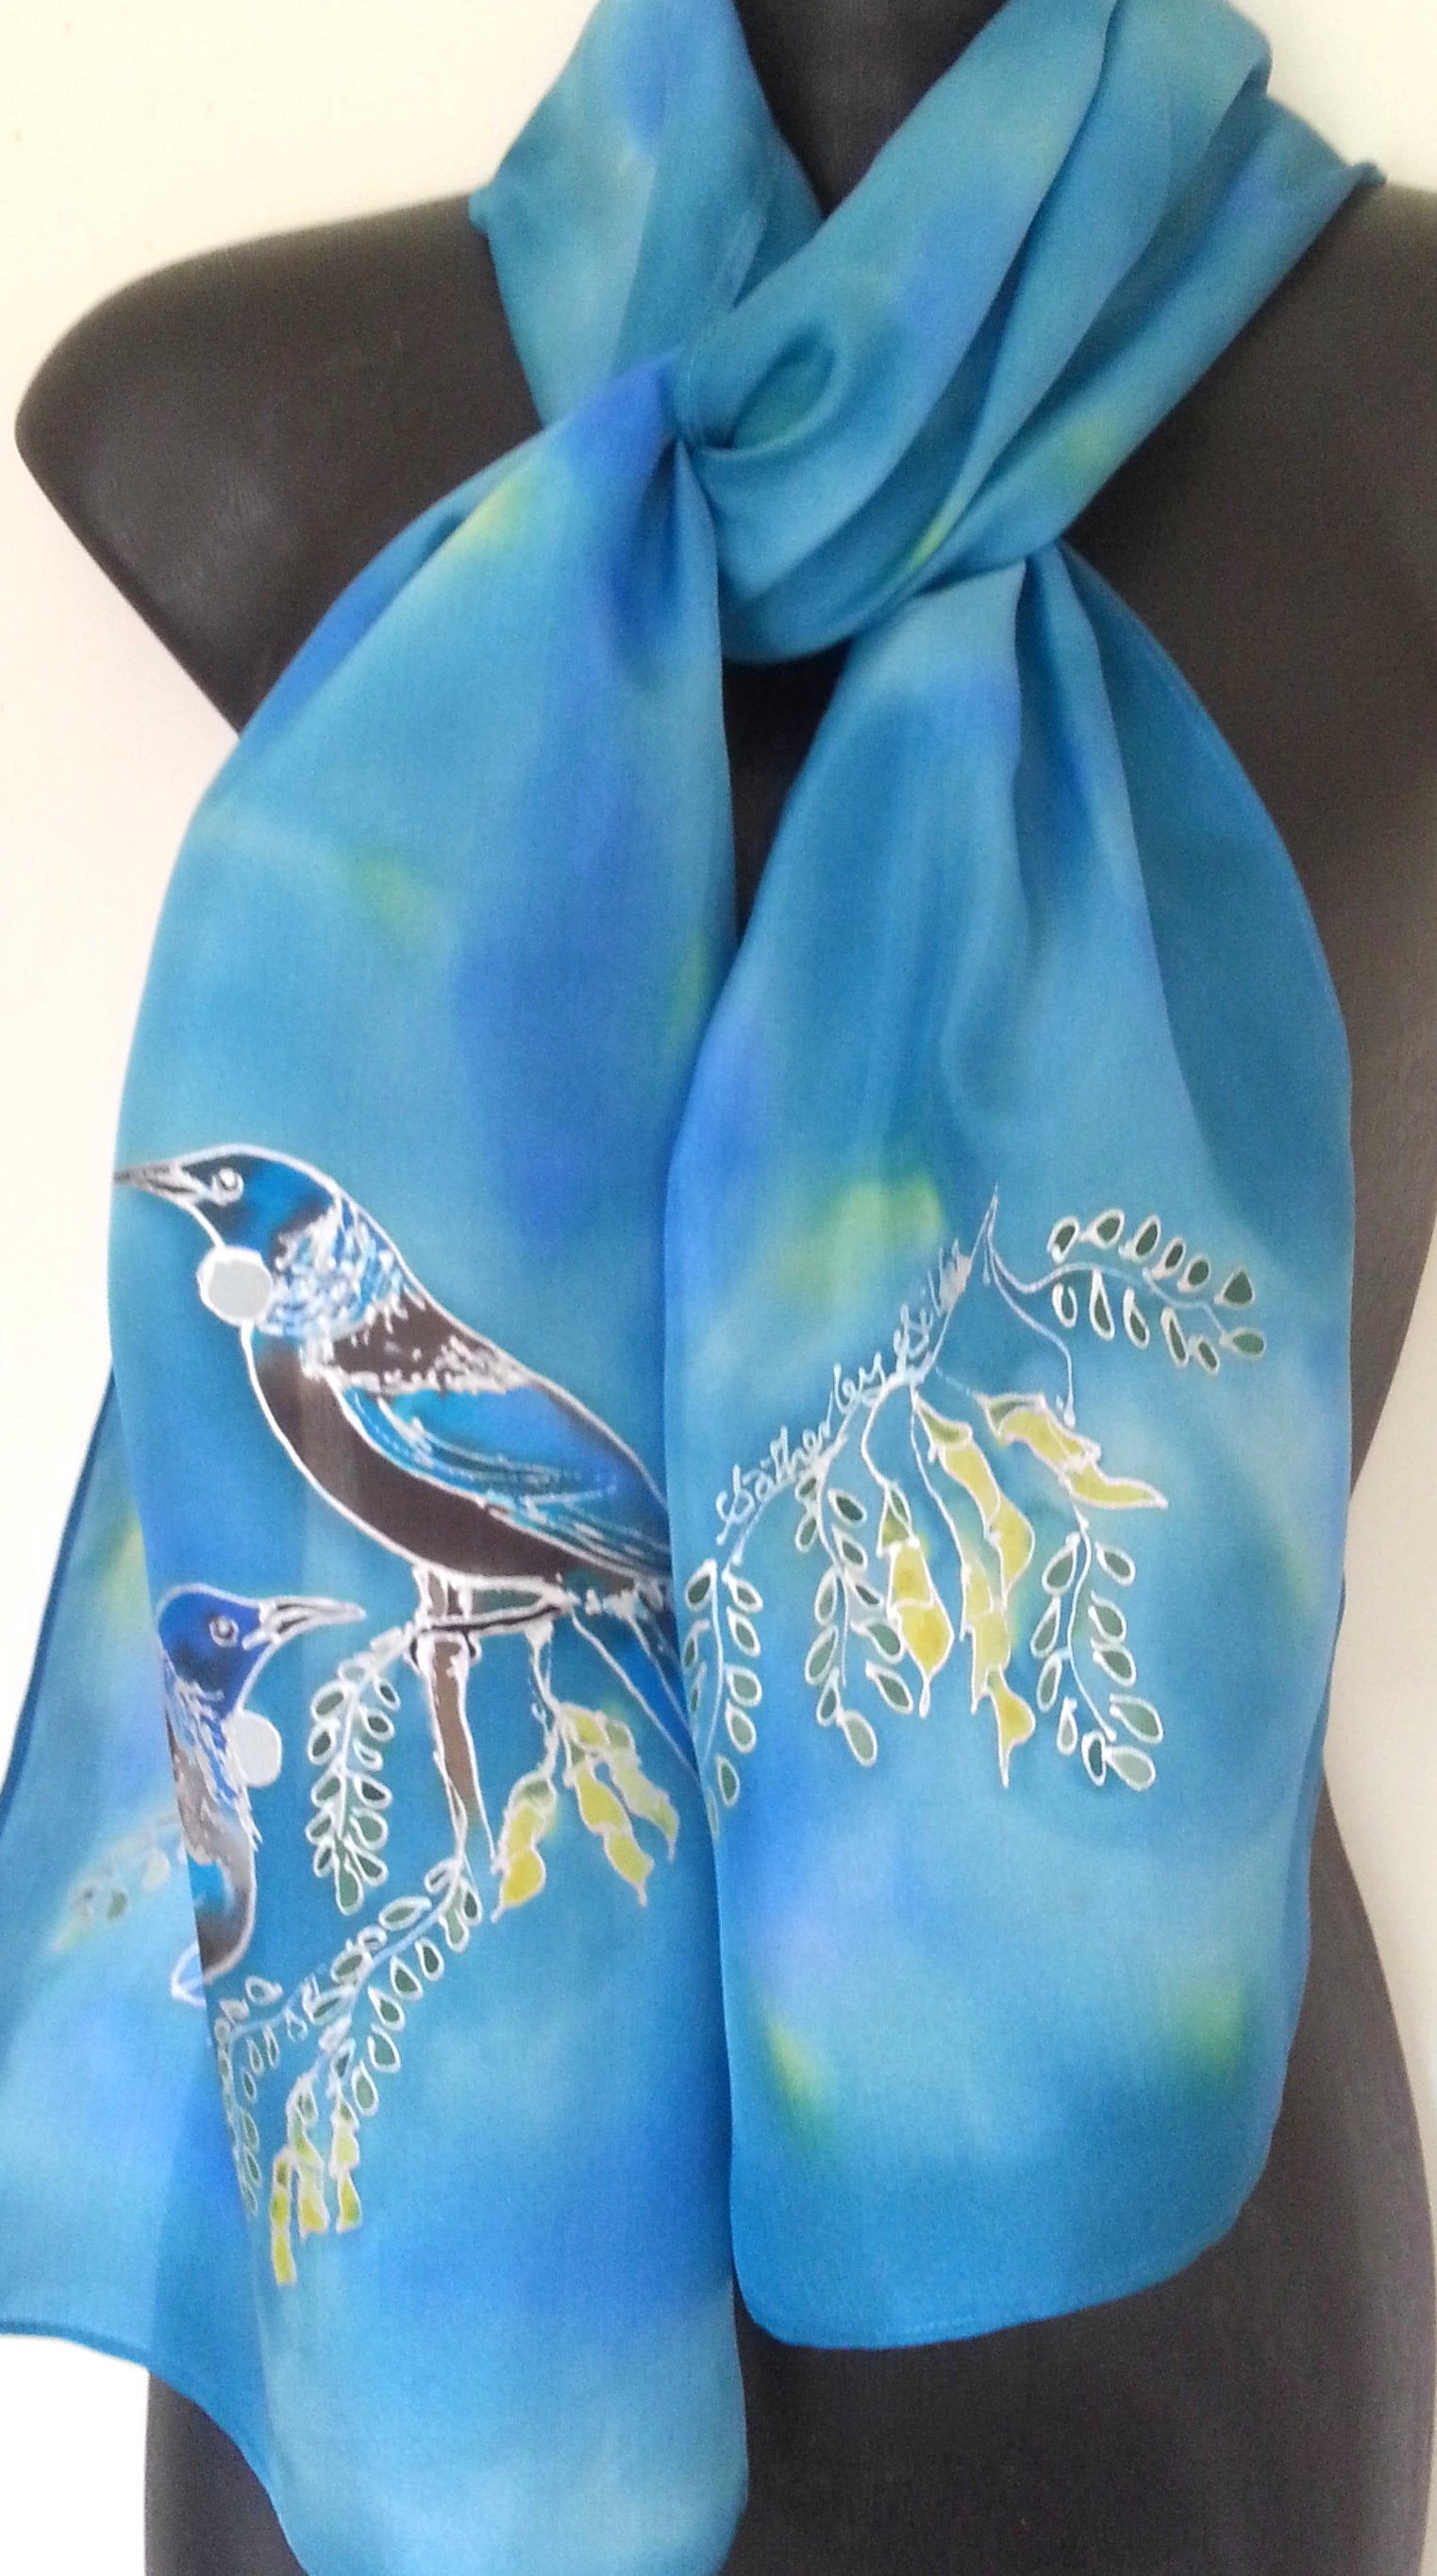 New Zealand Tuis & Kowhai Tree - Hand painted Silk Scarf - Satherley Silks NZ